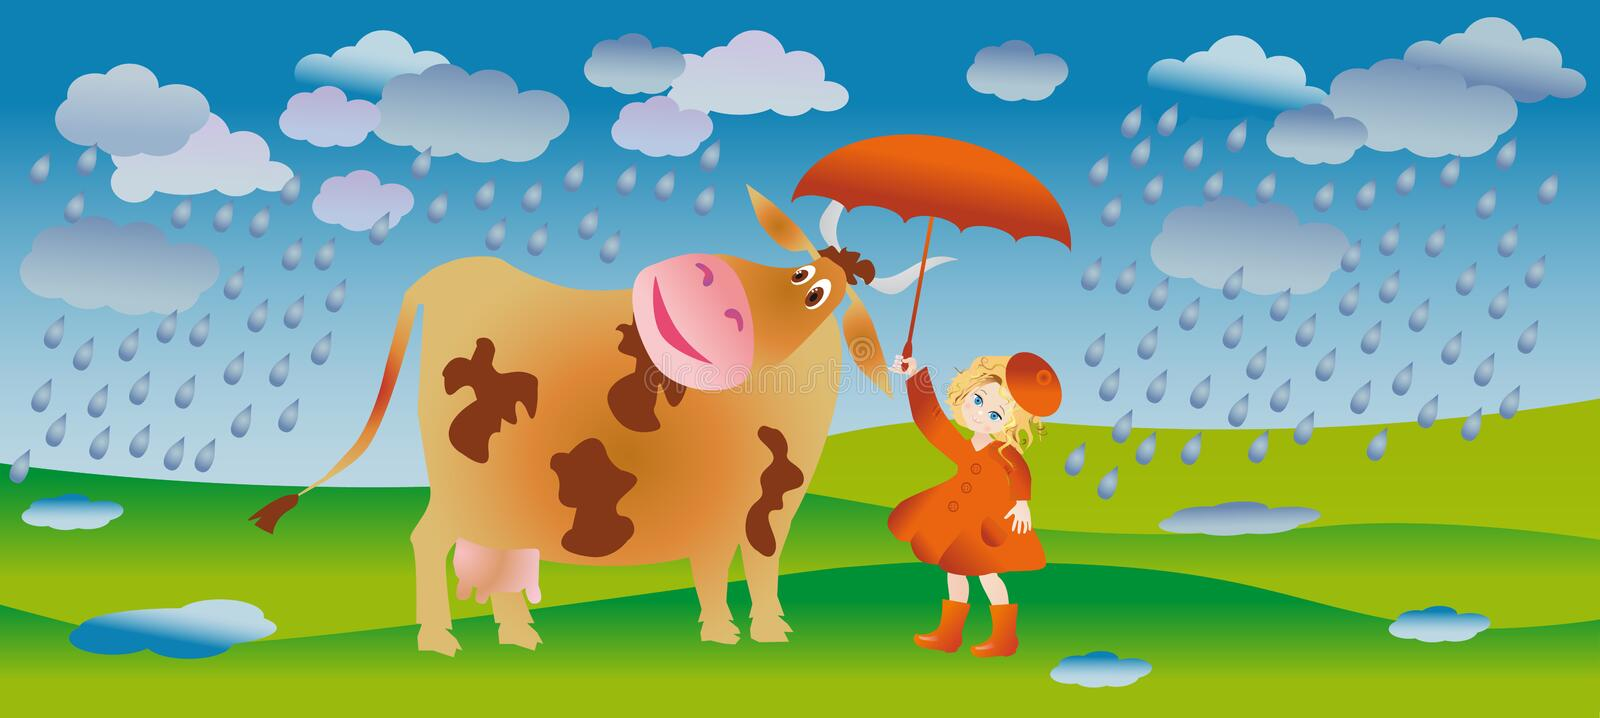 Walk in the rain. A girl and cow go for a walk in the rain stock illustration